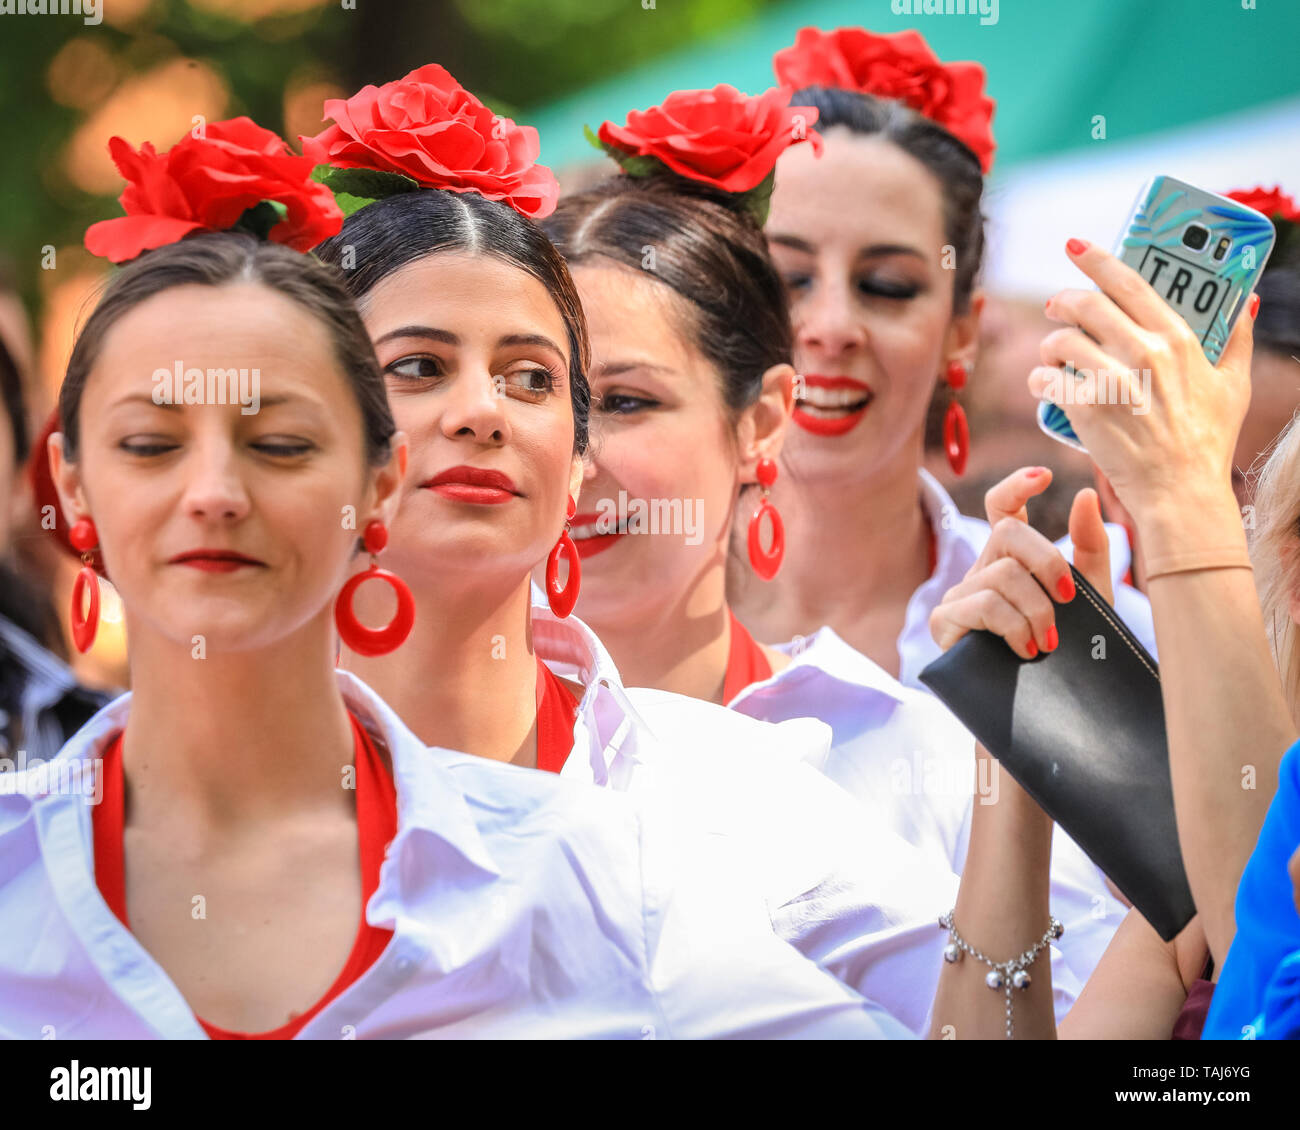 South Bank, London, UK - 25th May 2019. Viva La Feria - dancers from by Illusion Flamenco School in London passionately perform in different traditional outfits. The Feria de Londres is a free festival on London's South Bank presenting Spanish culture, dance, music, wine and food from May 24-26. Credit: Imageplotter/Alamy Live News - Stock Image